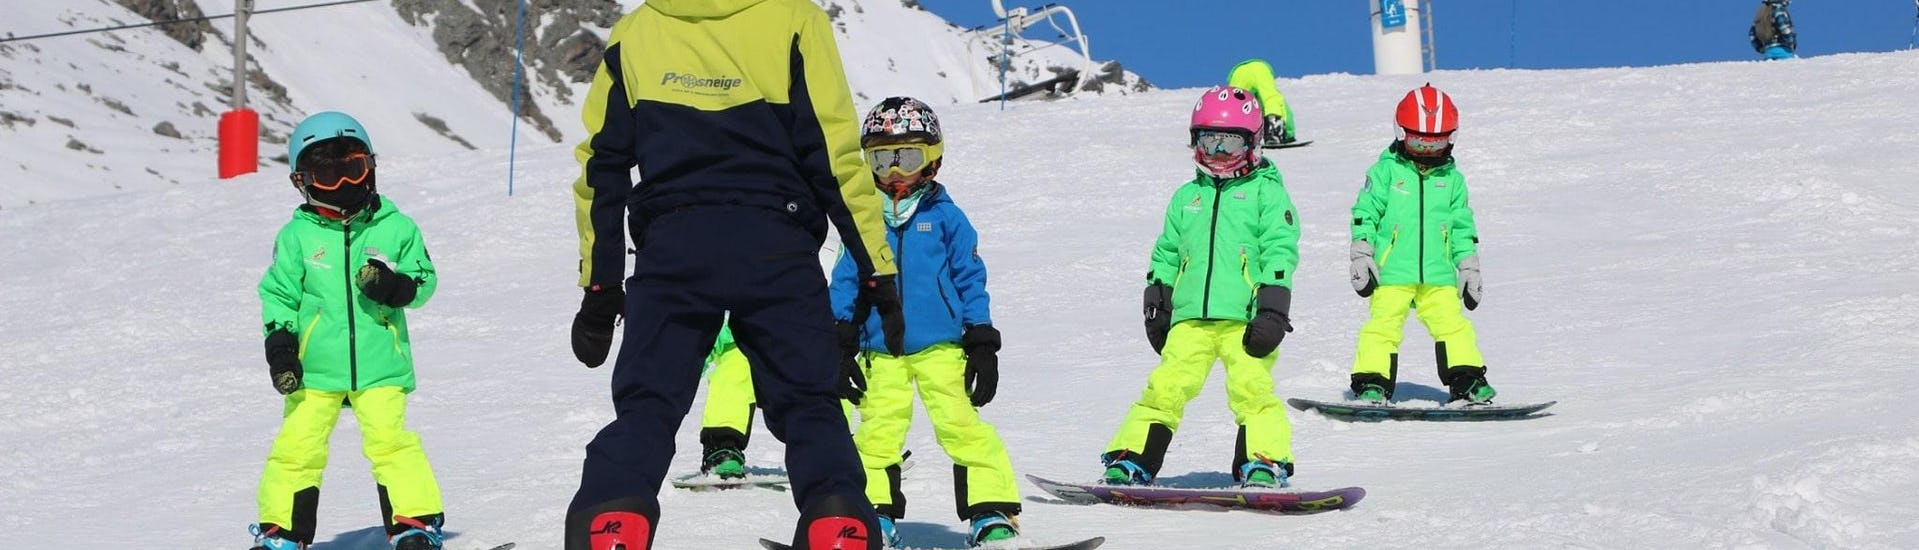 Kids Ski Lessons (5-13 years) - February 16-21 - Menuires